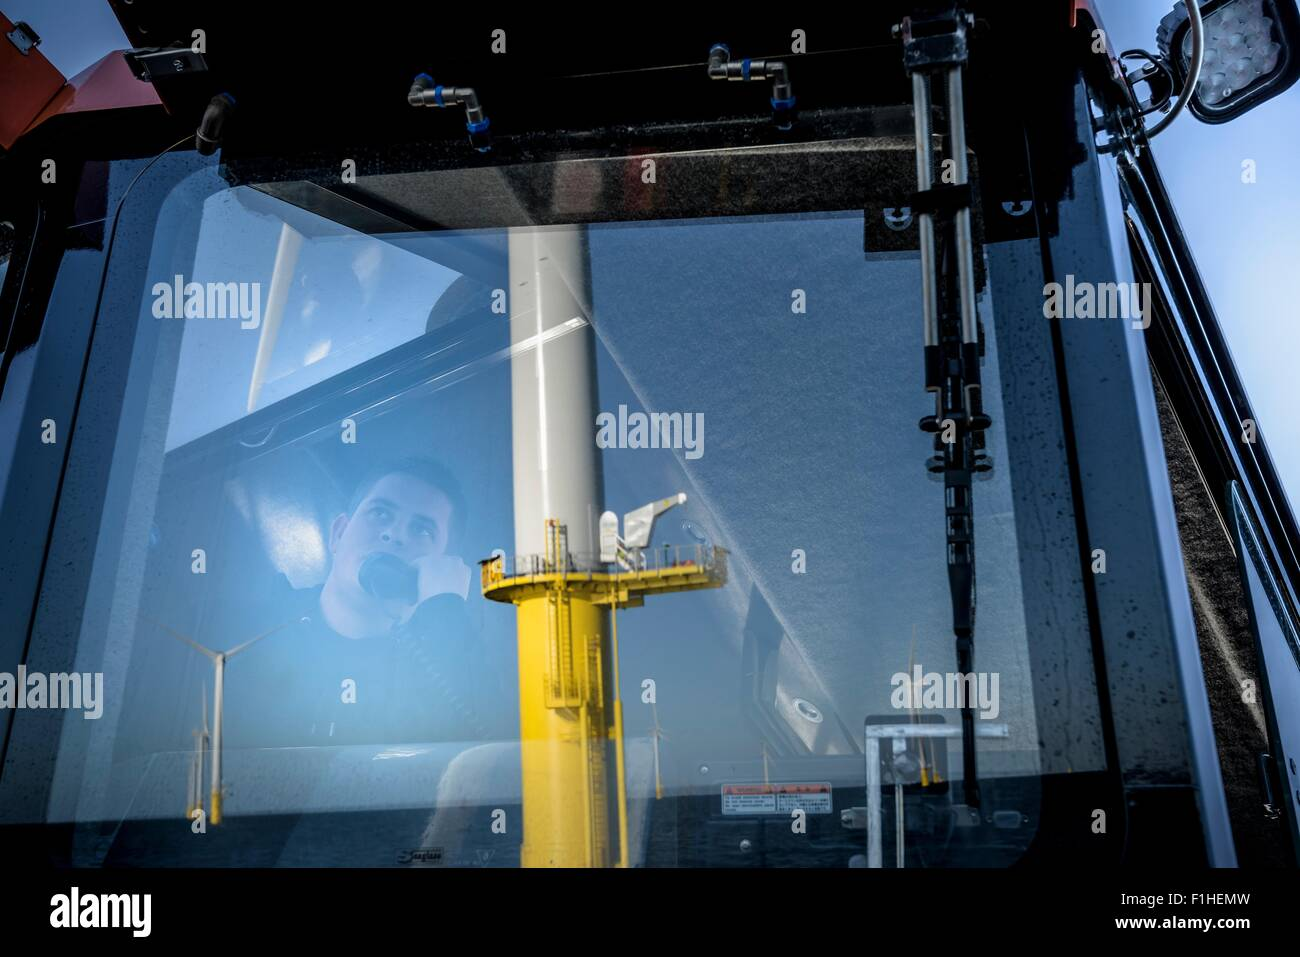 Captain of boat speaking on radio in bridge on offshore wind farm - Stock Image